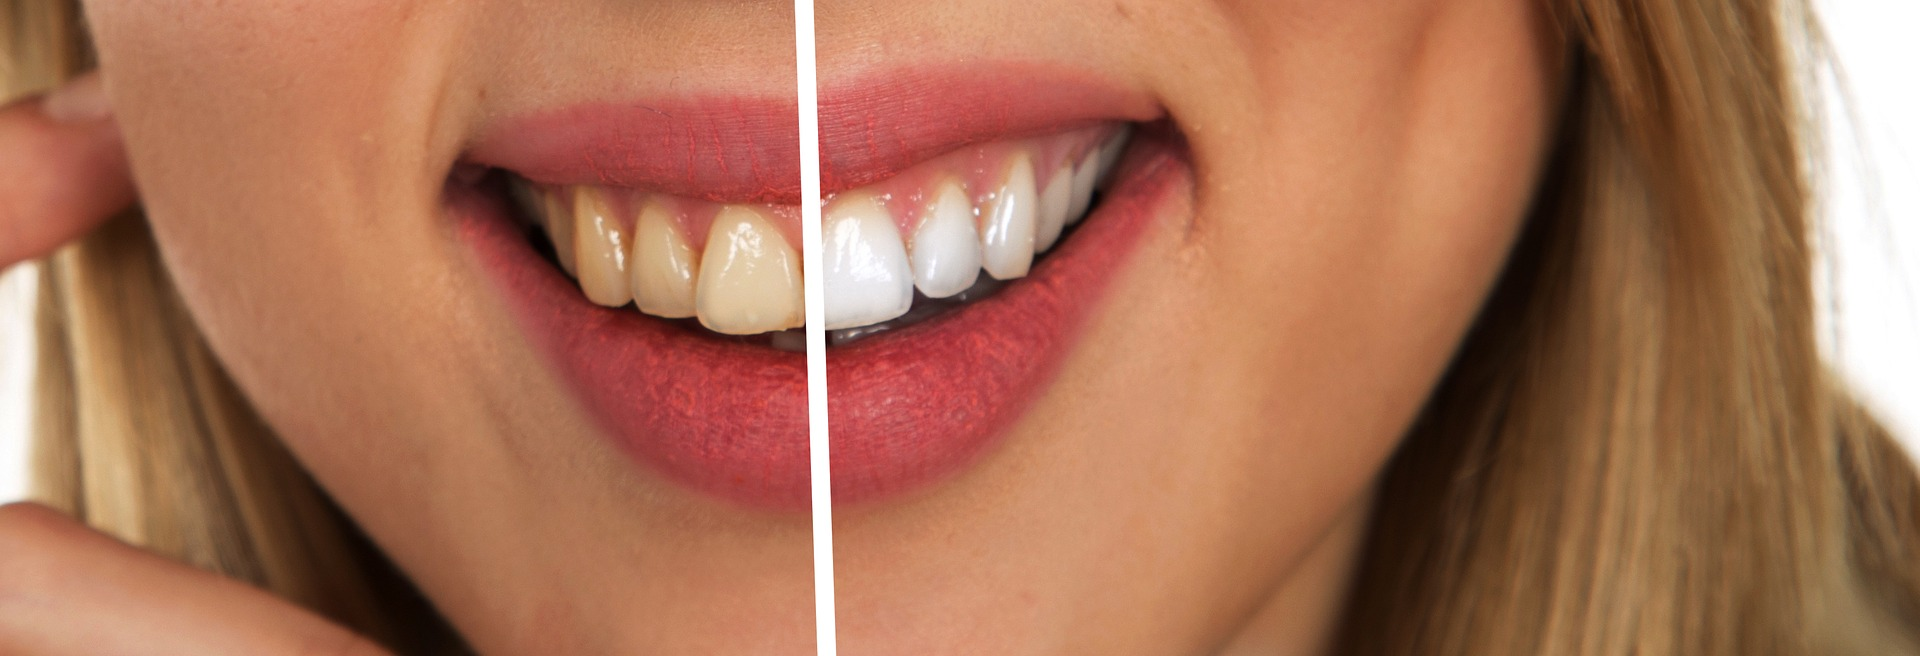 Jenkintown Dentist Teeth Whitening